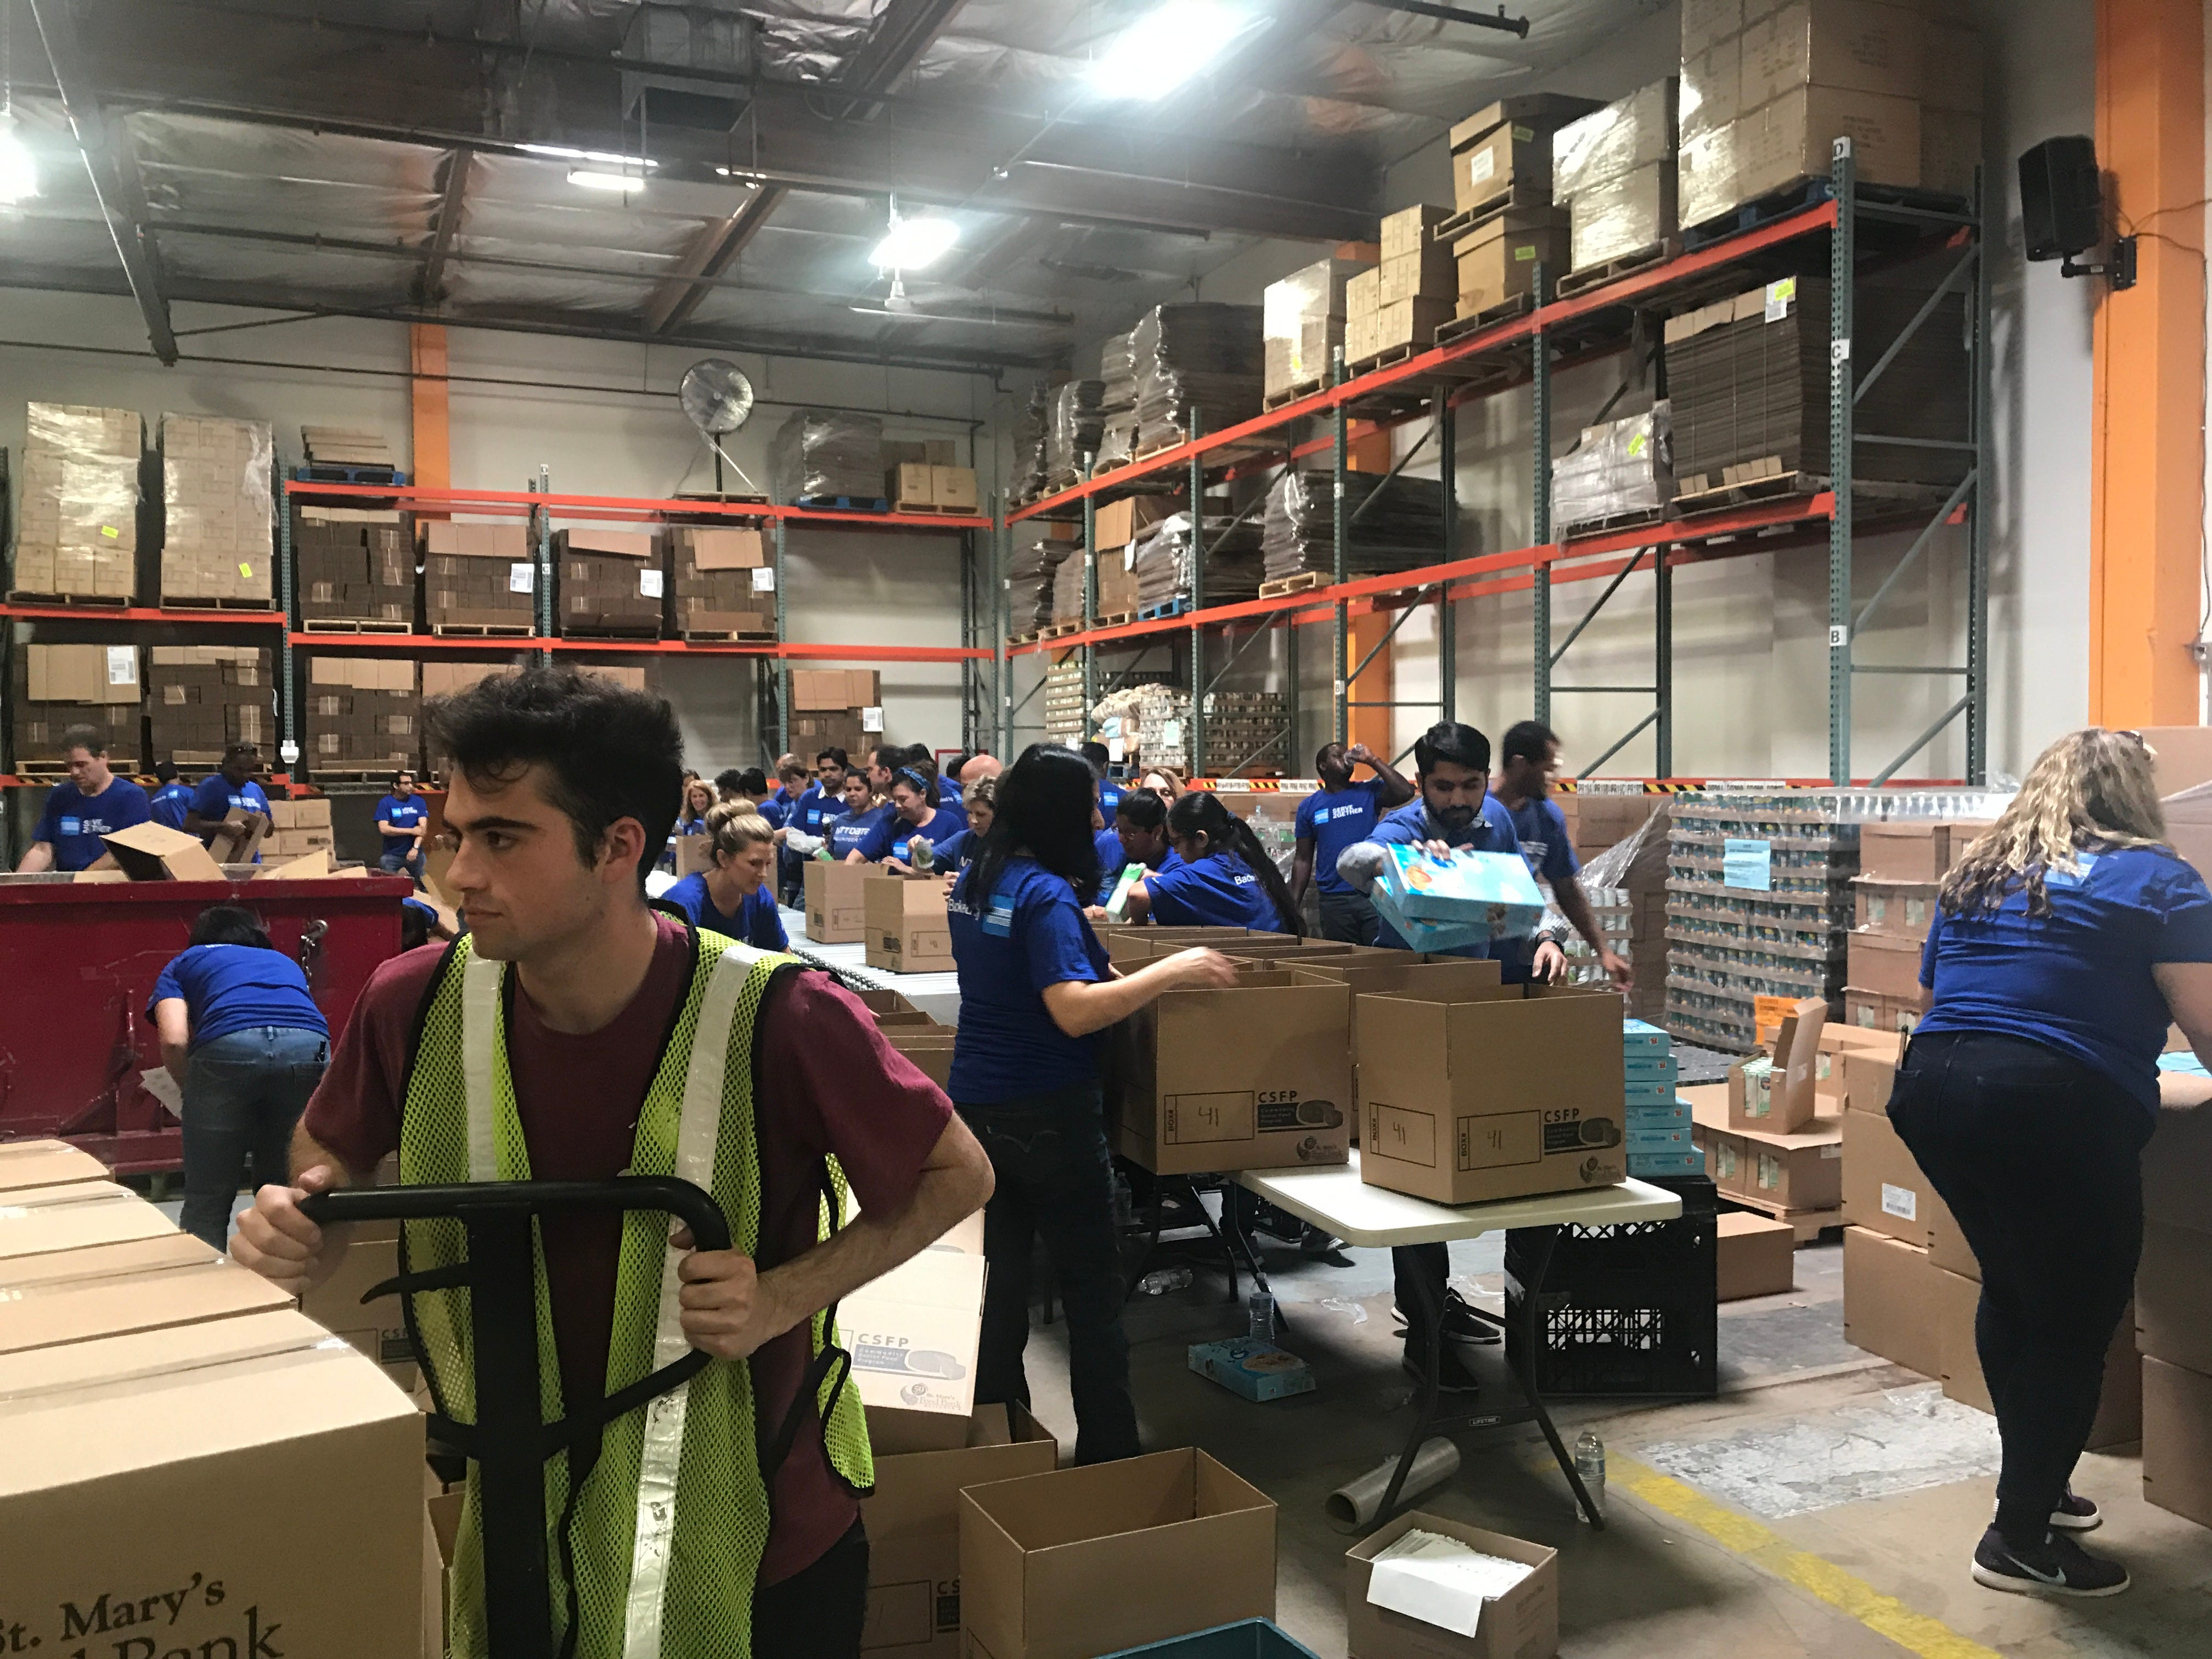 Volunteers at St. Mary's Food Bank pack emergency food boxes for families in need on May 9, 2019. St. Mary's distributes more than 40,000 emergency boxes each month.